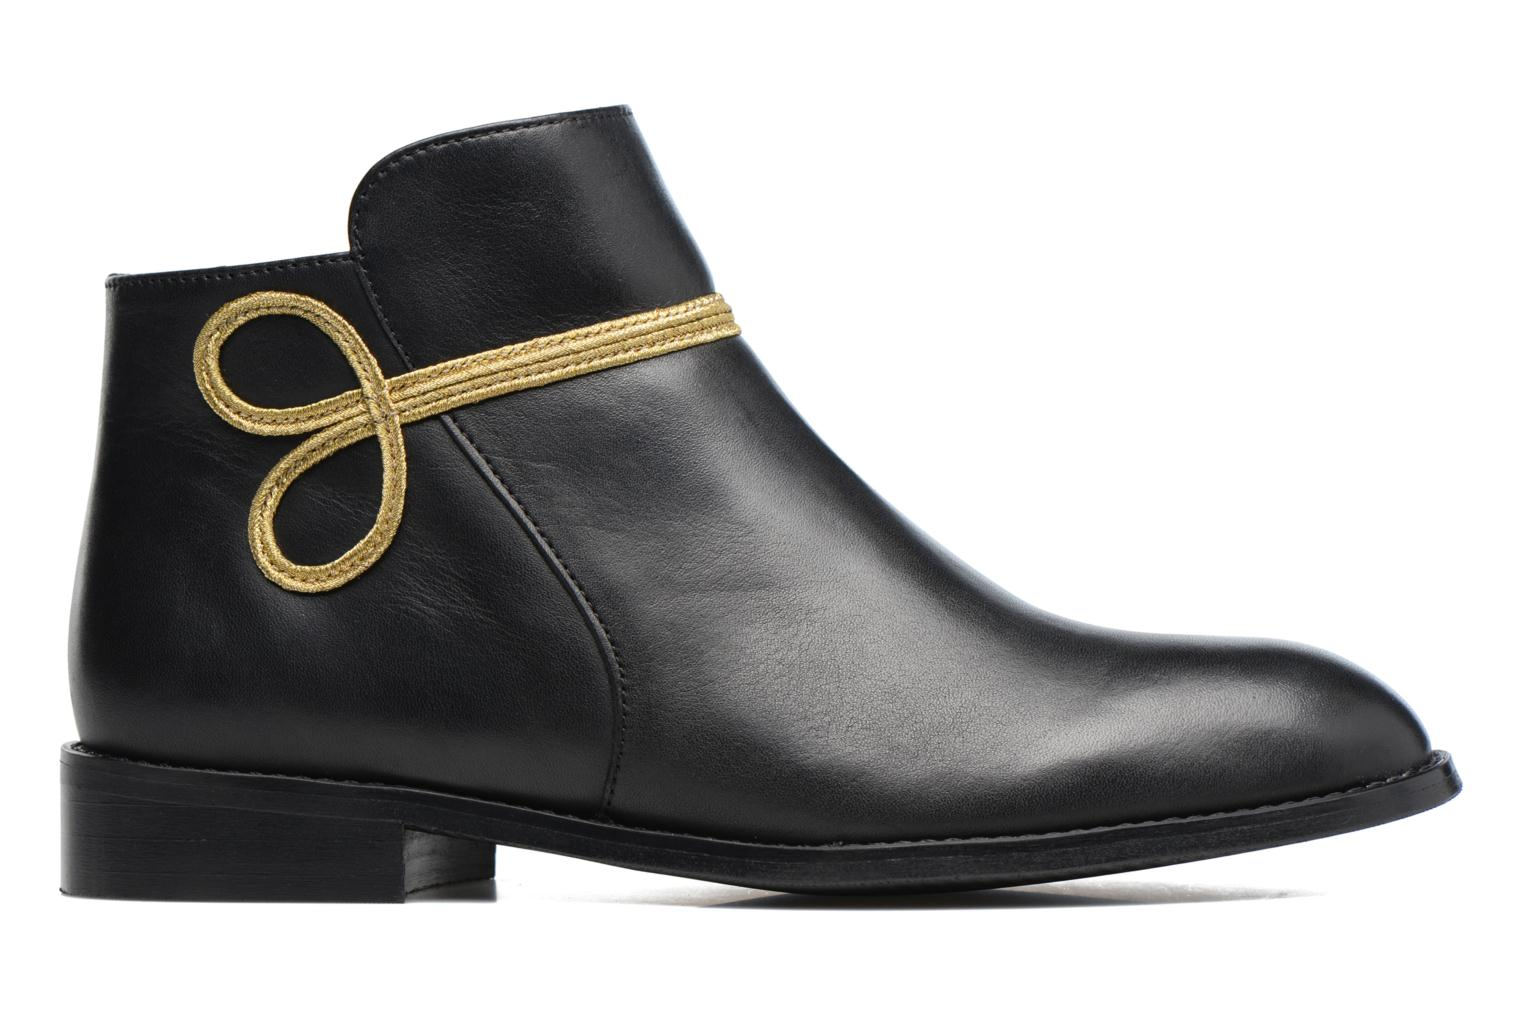 Lisse Cuir Boots SARENZA Made by Noir 18 Camp Y8OAFTwq